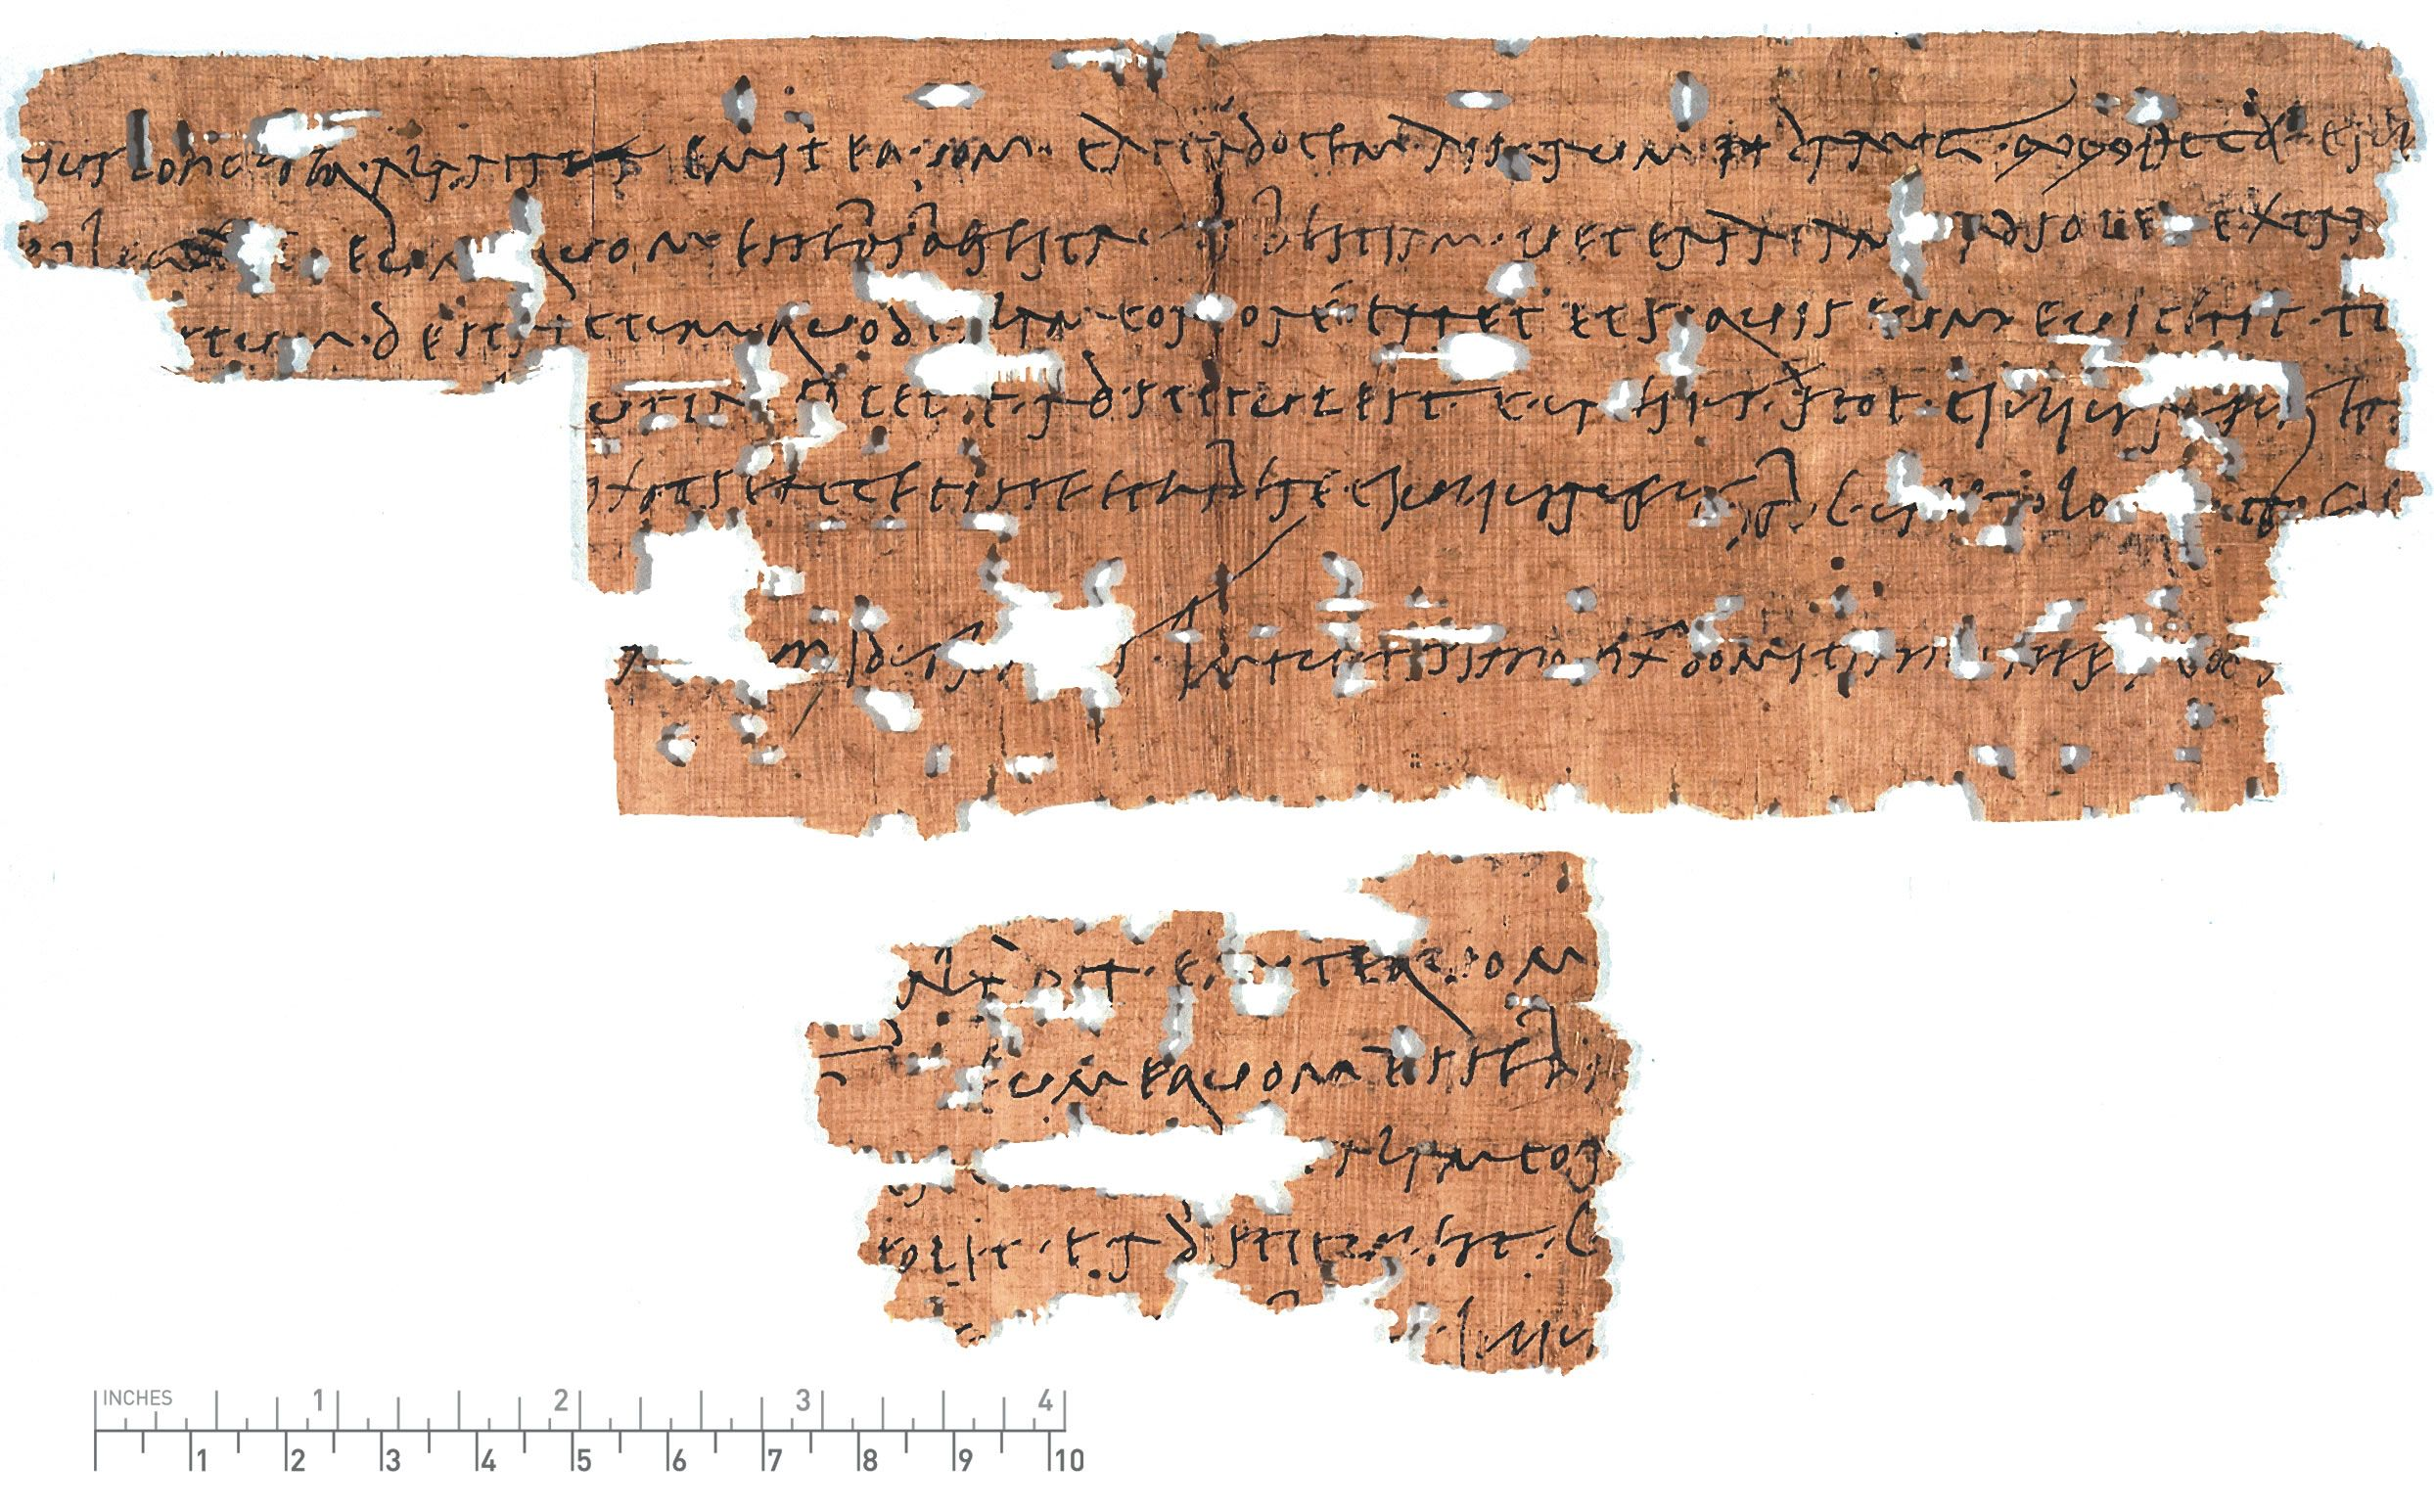 Fragment Of A Horse Sales Contract Written On Papyrus In Old Roman